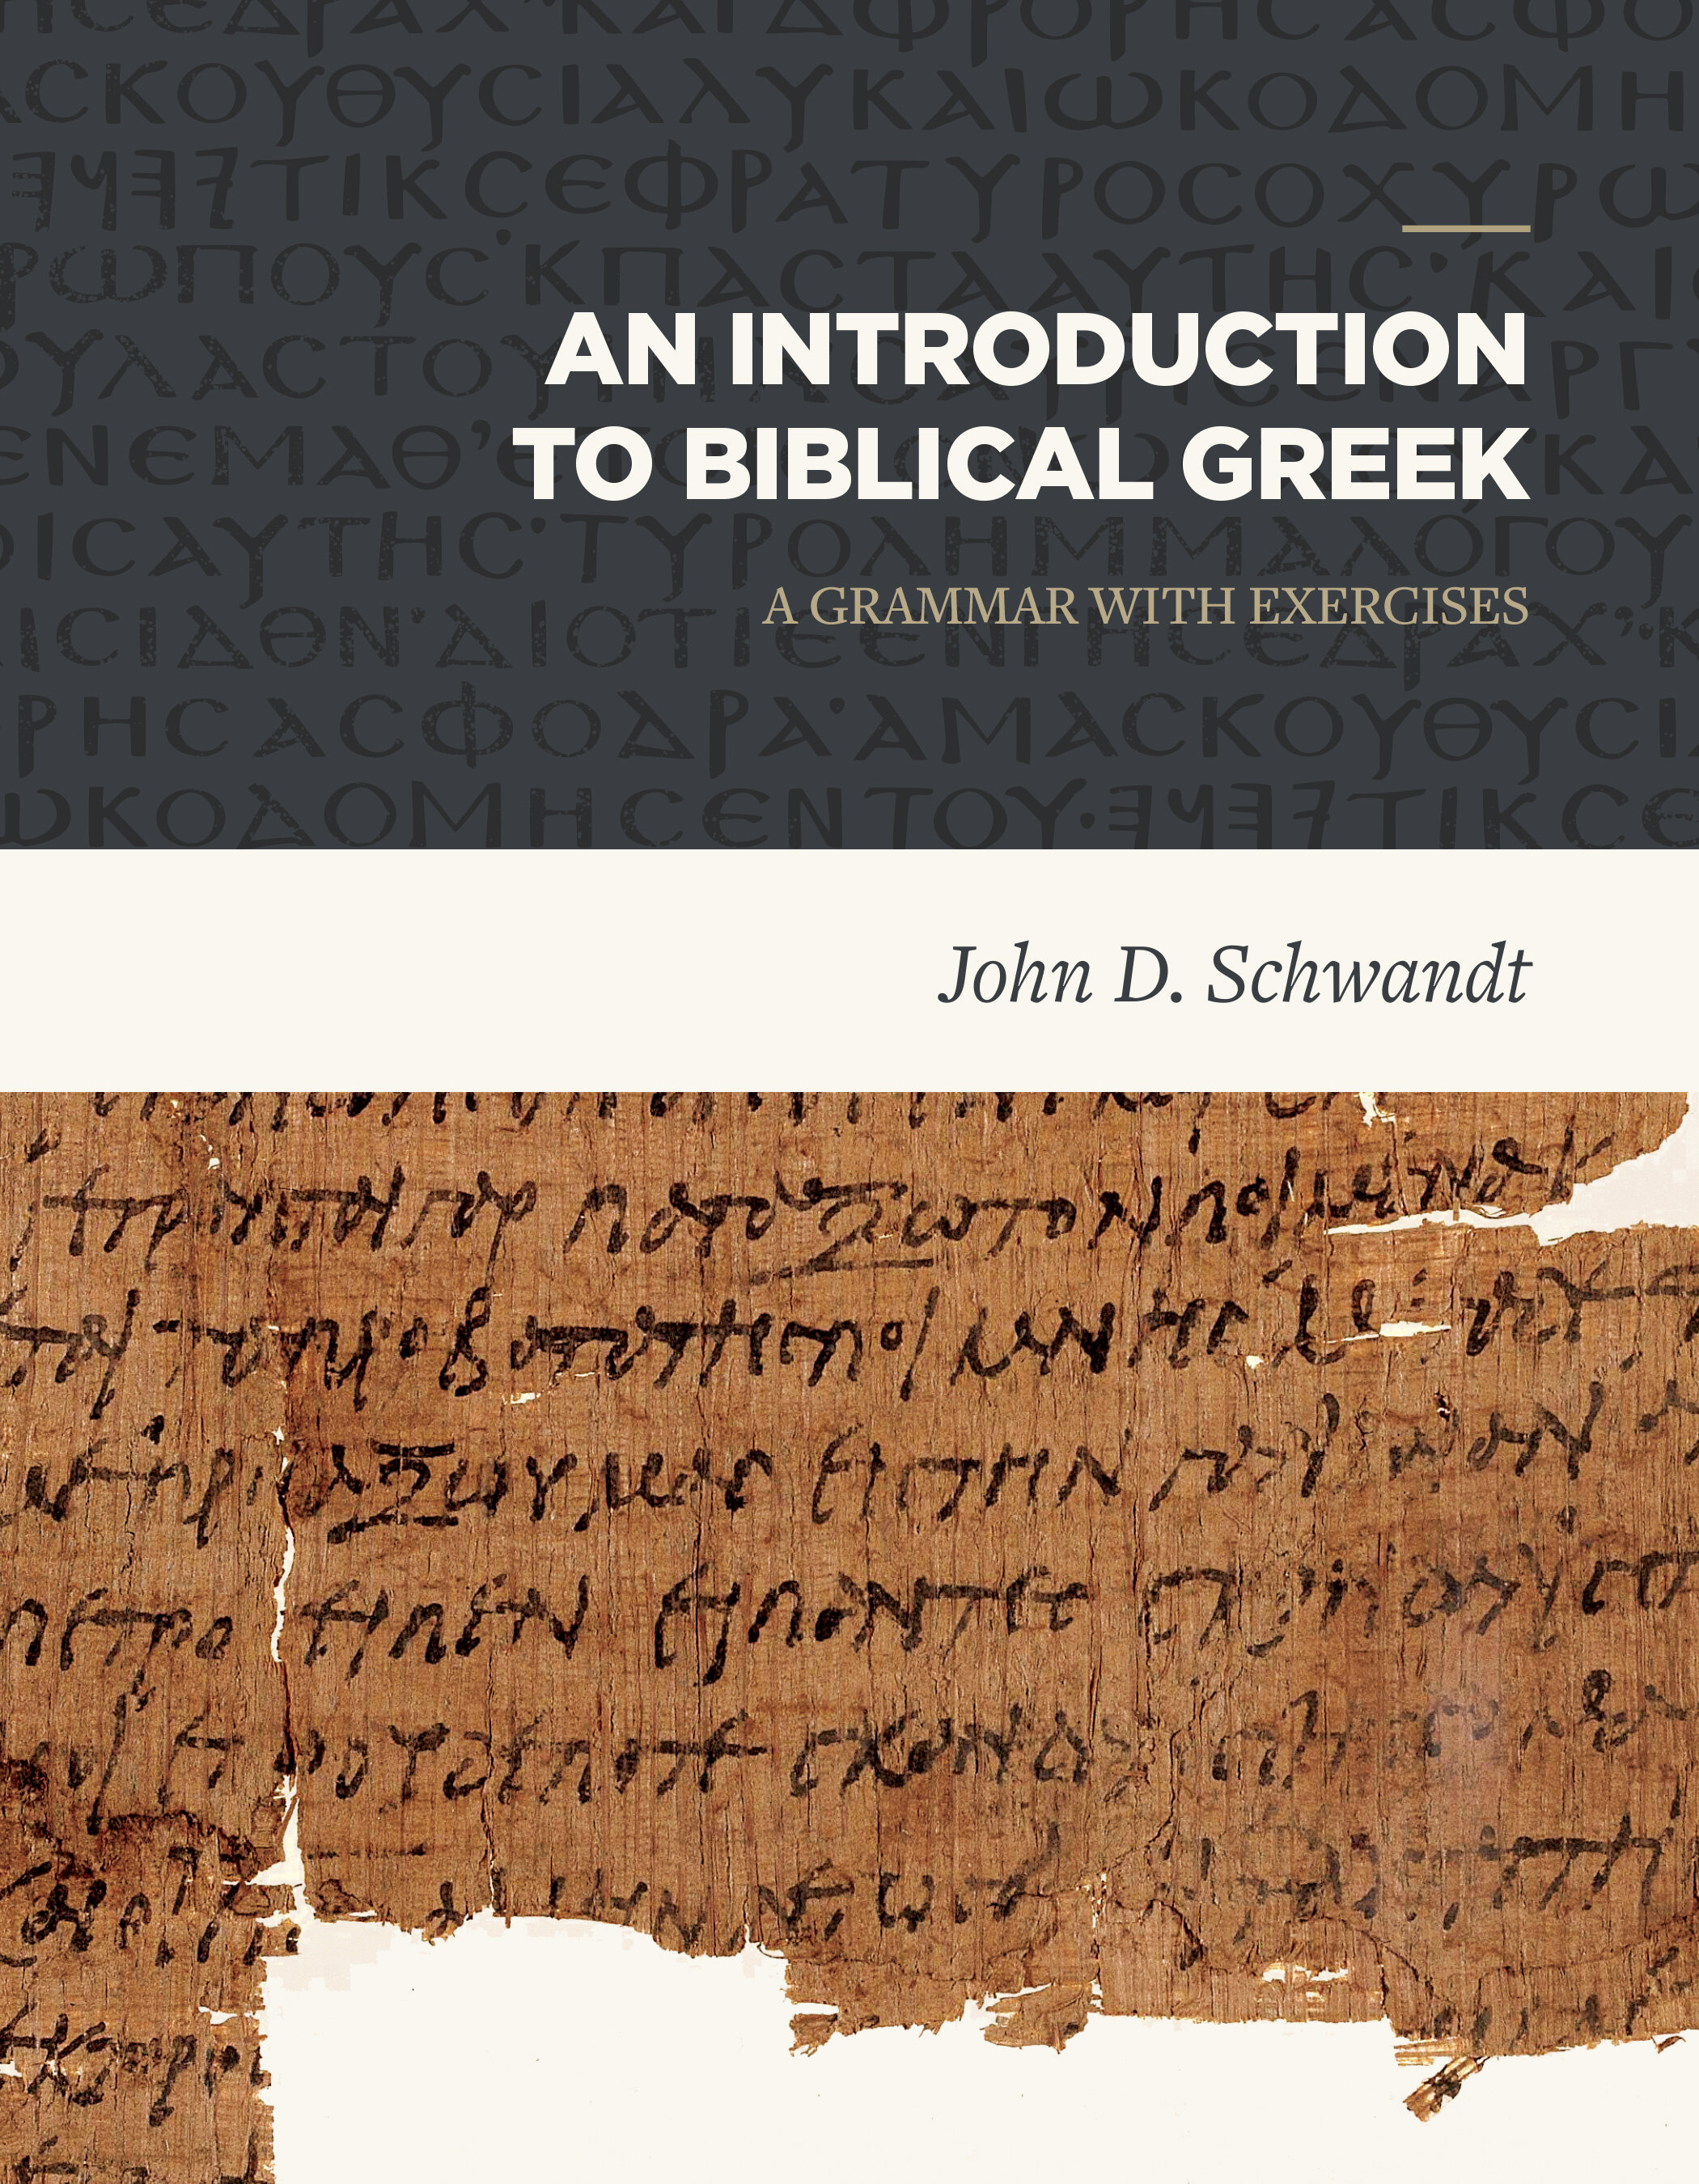 An Introduction to Biblical Greek: A Grammar with Exercises (Revised Edition)